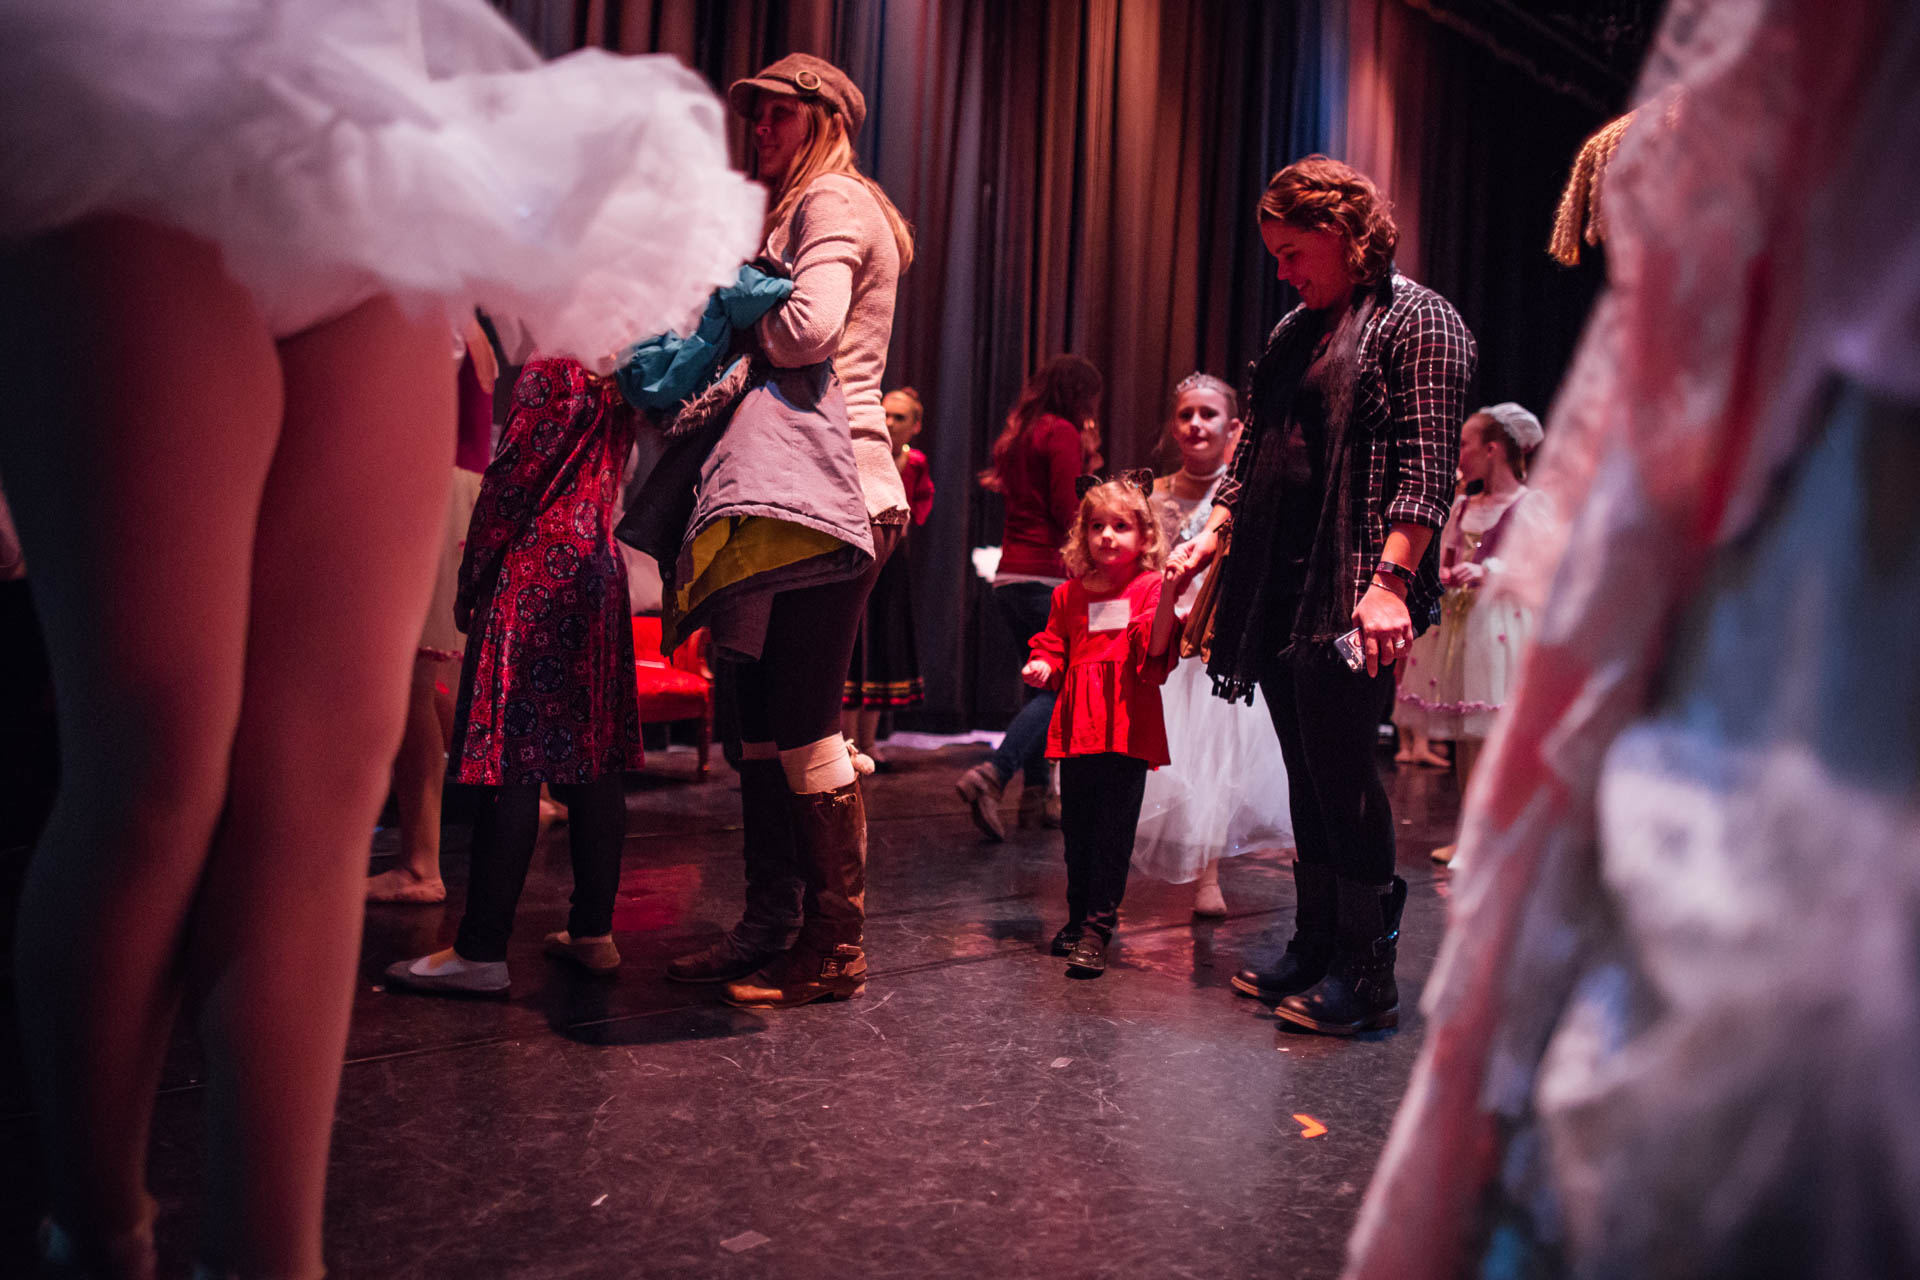 nutcracker-backstage-children-6916